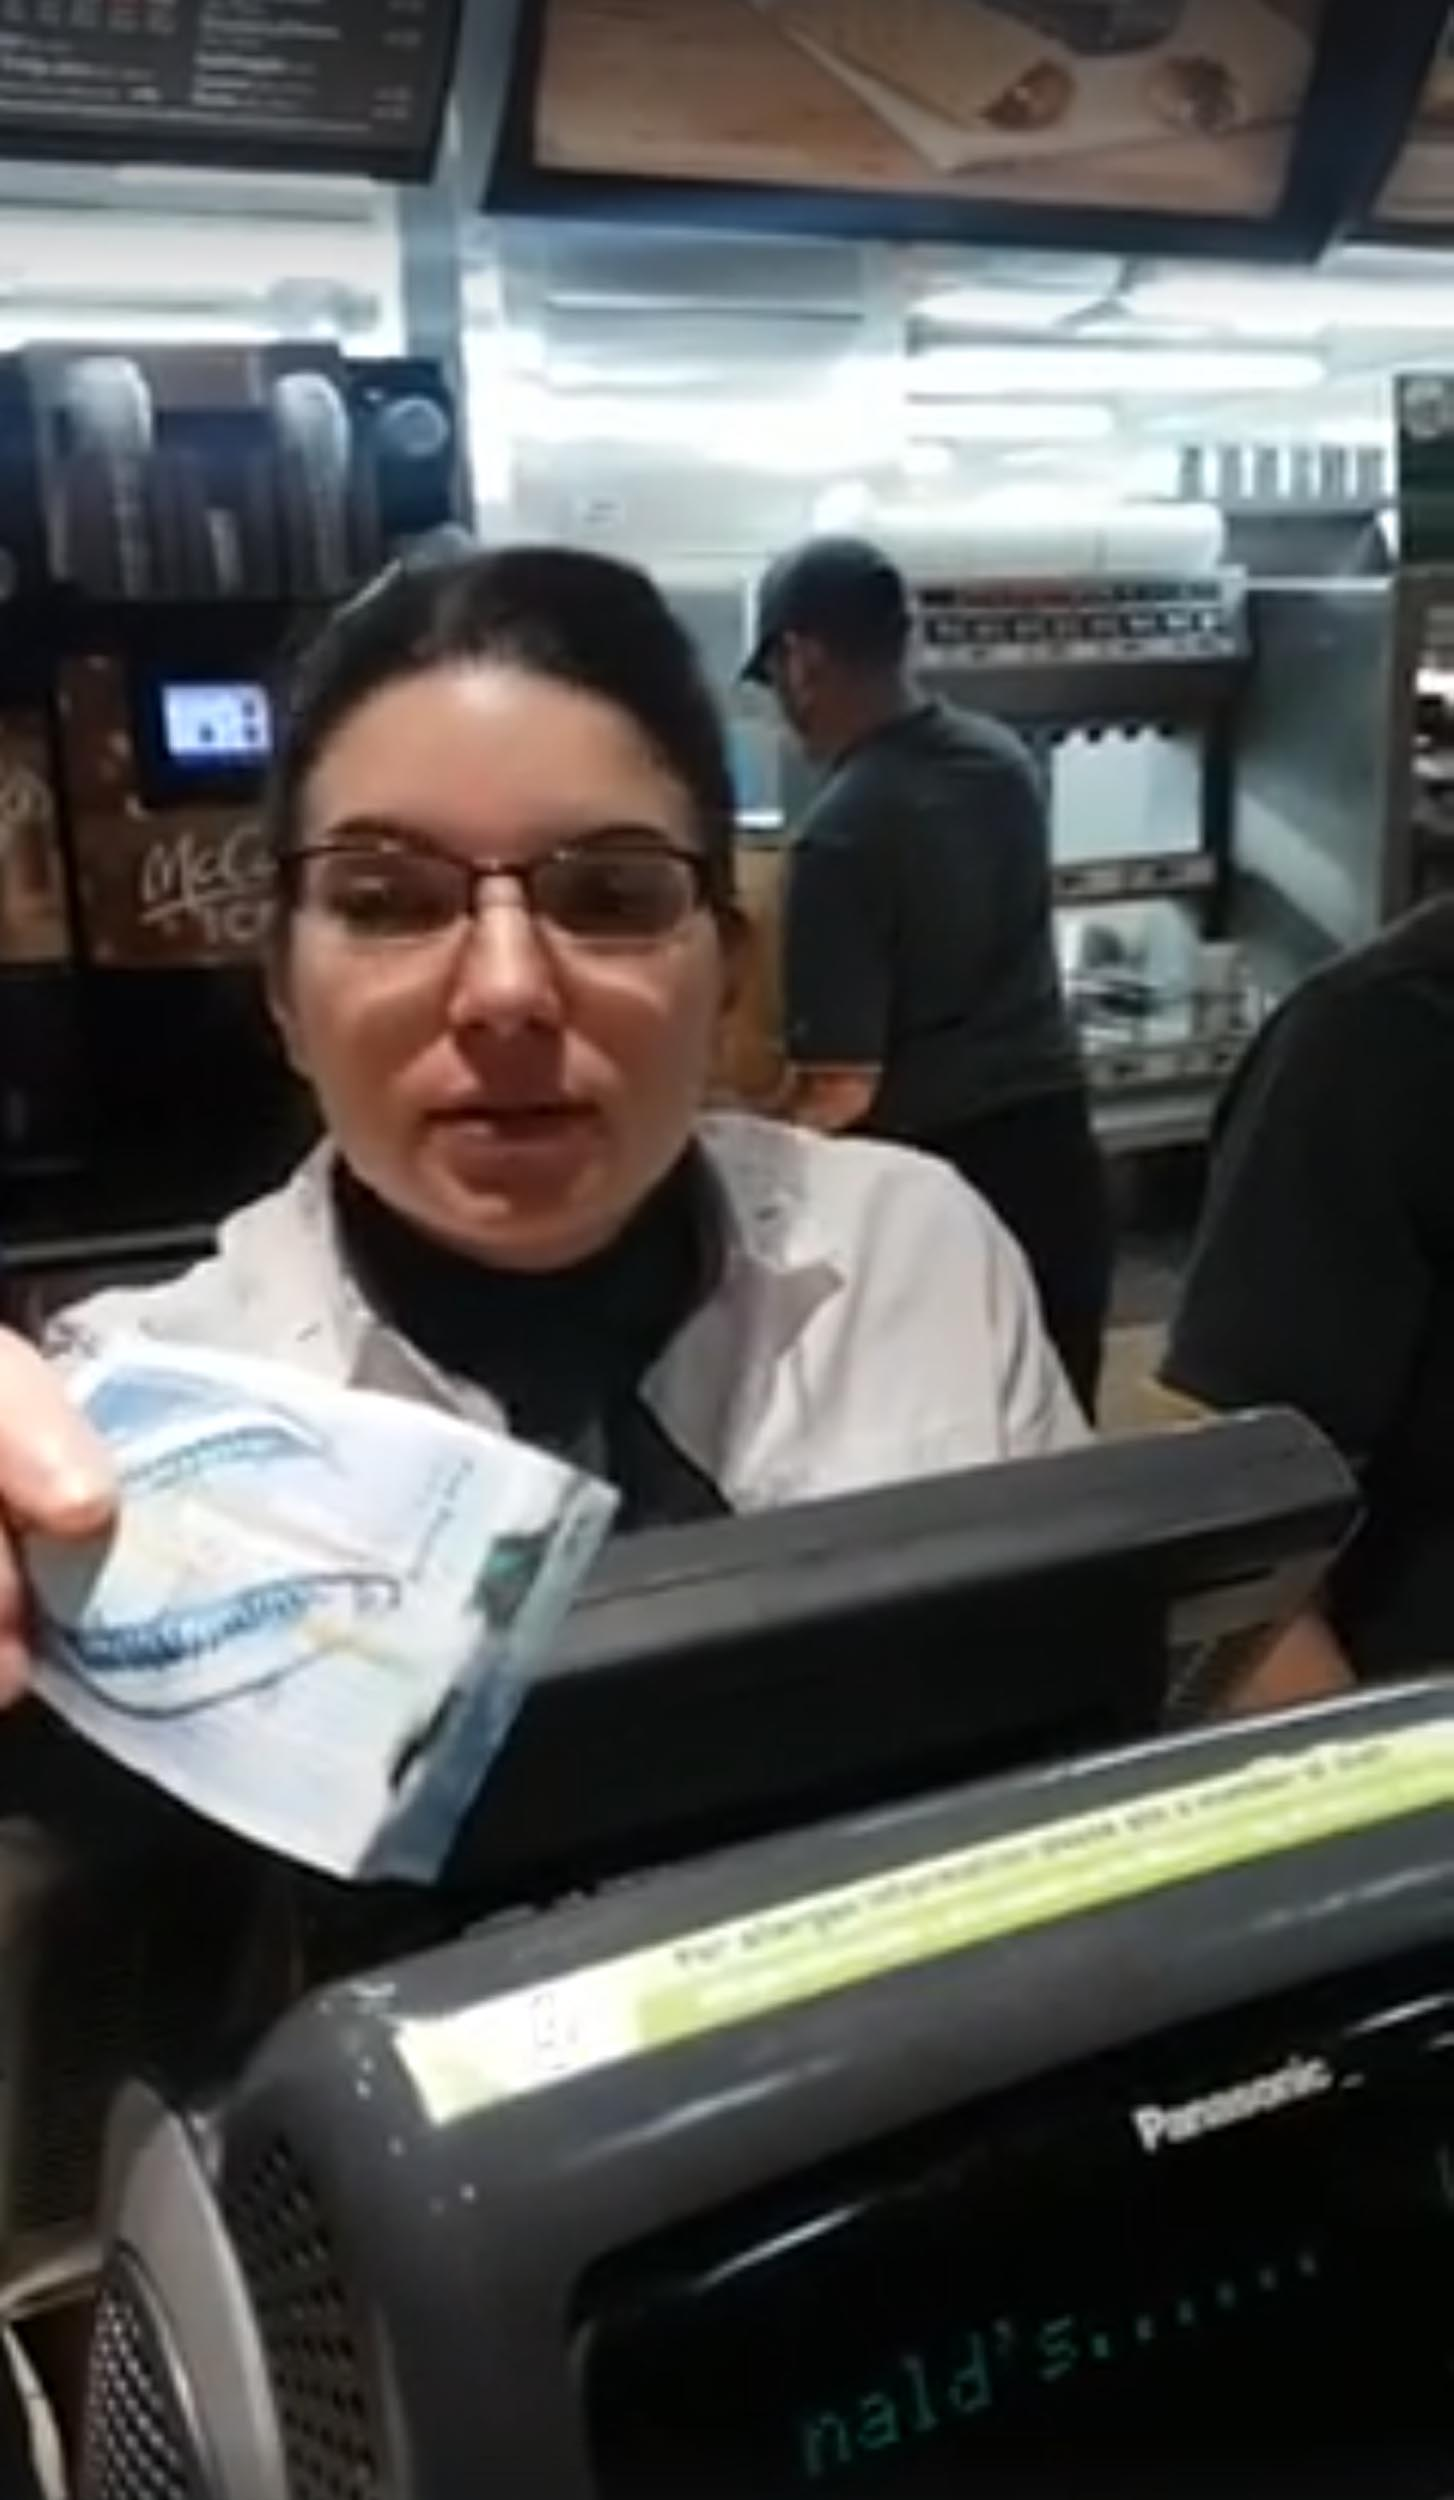 The woman behind the counter will not accept the note